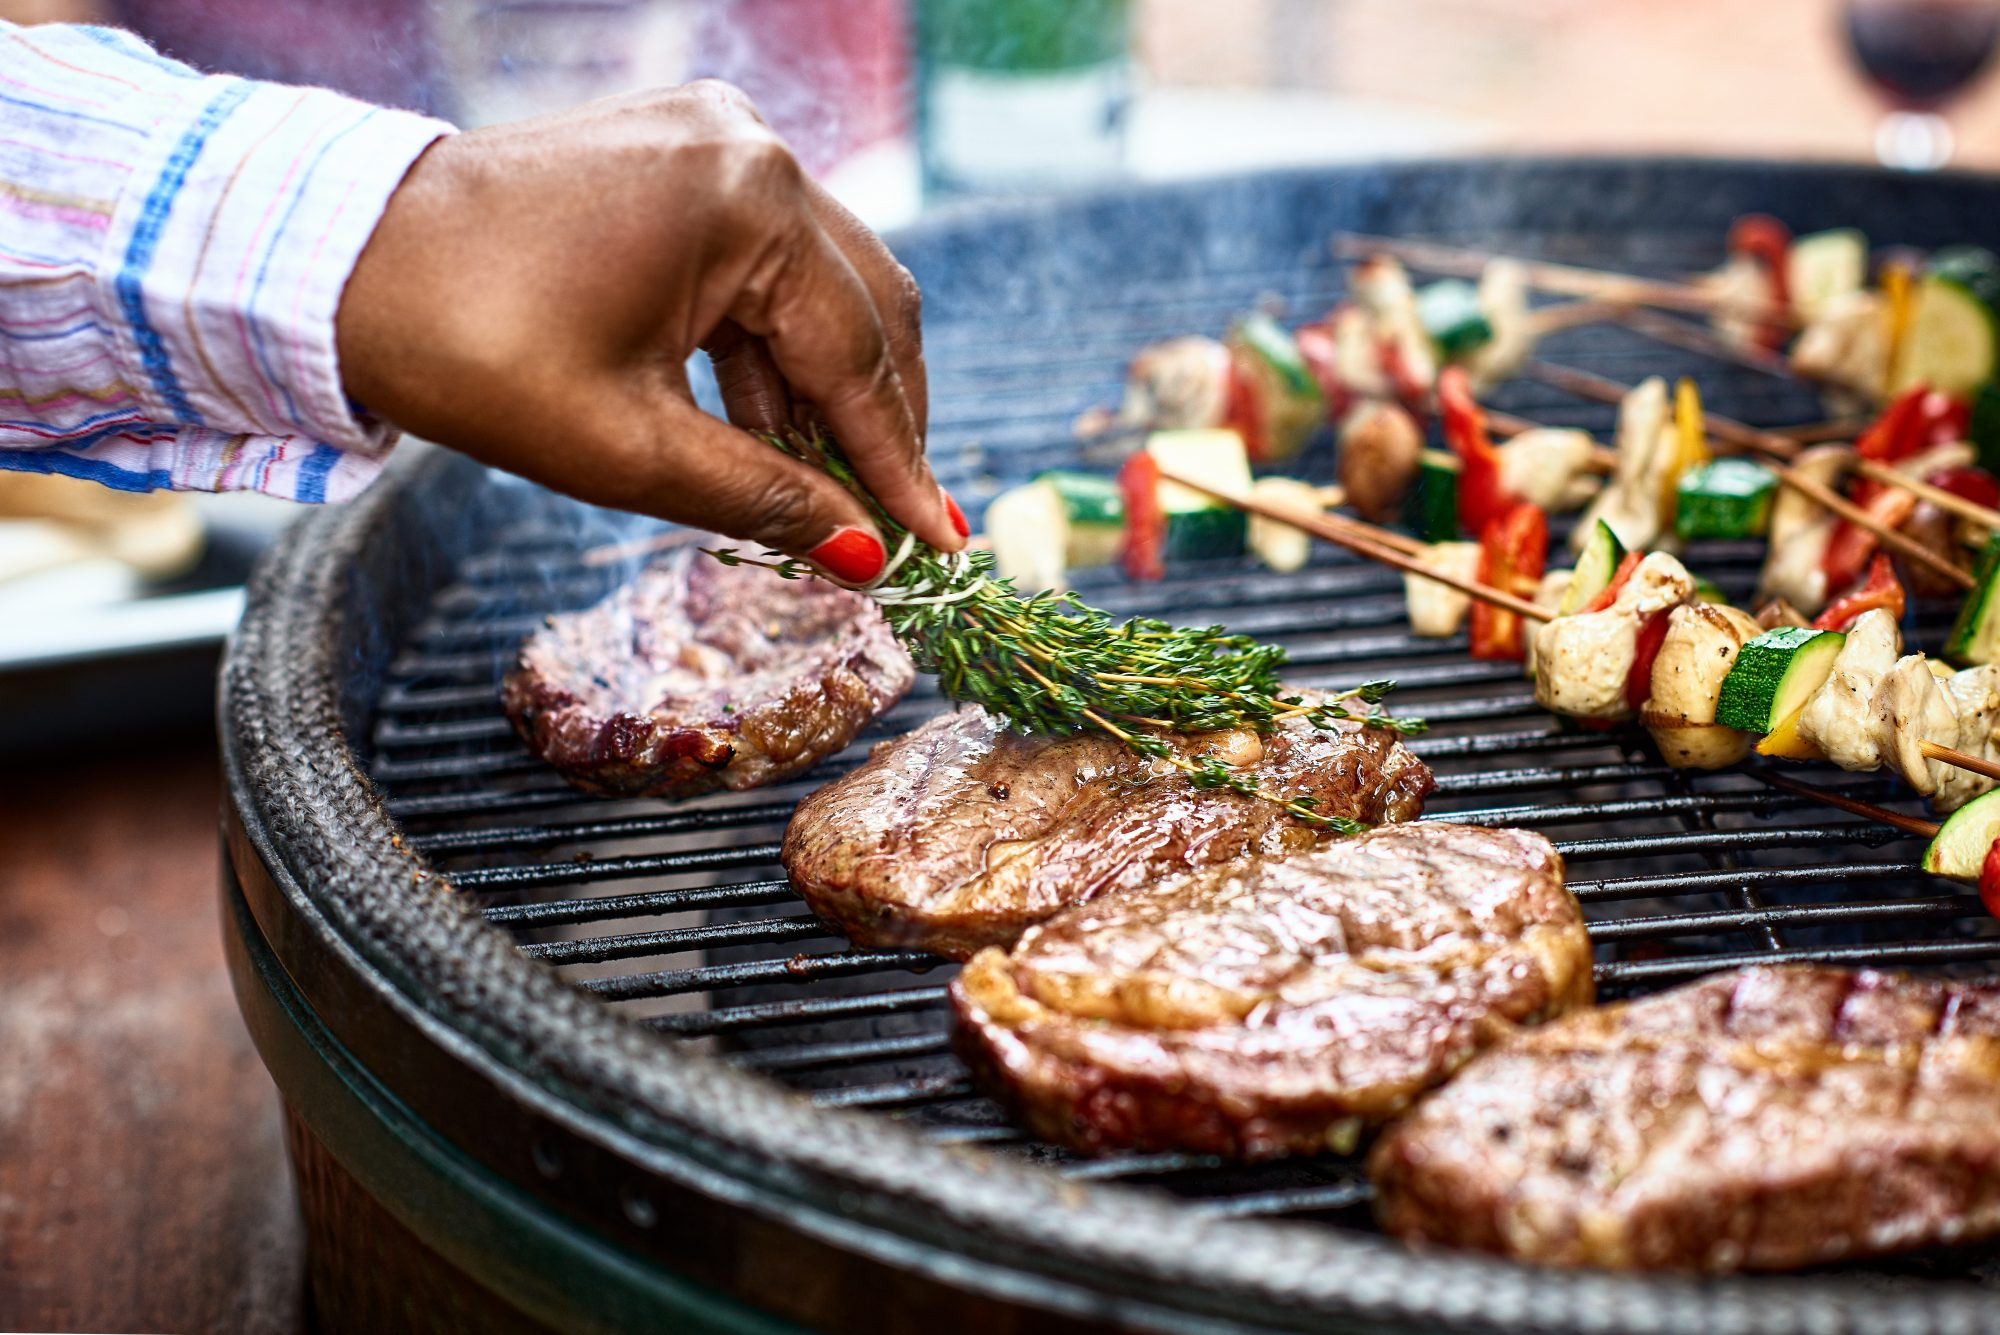 Steaks being seasoned with herbs as they cook on bbq grill: types of grills